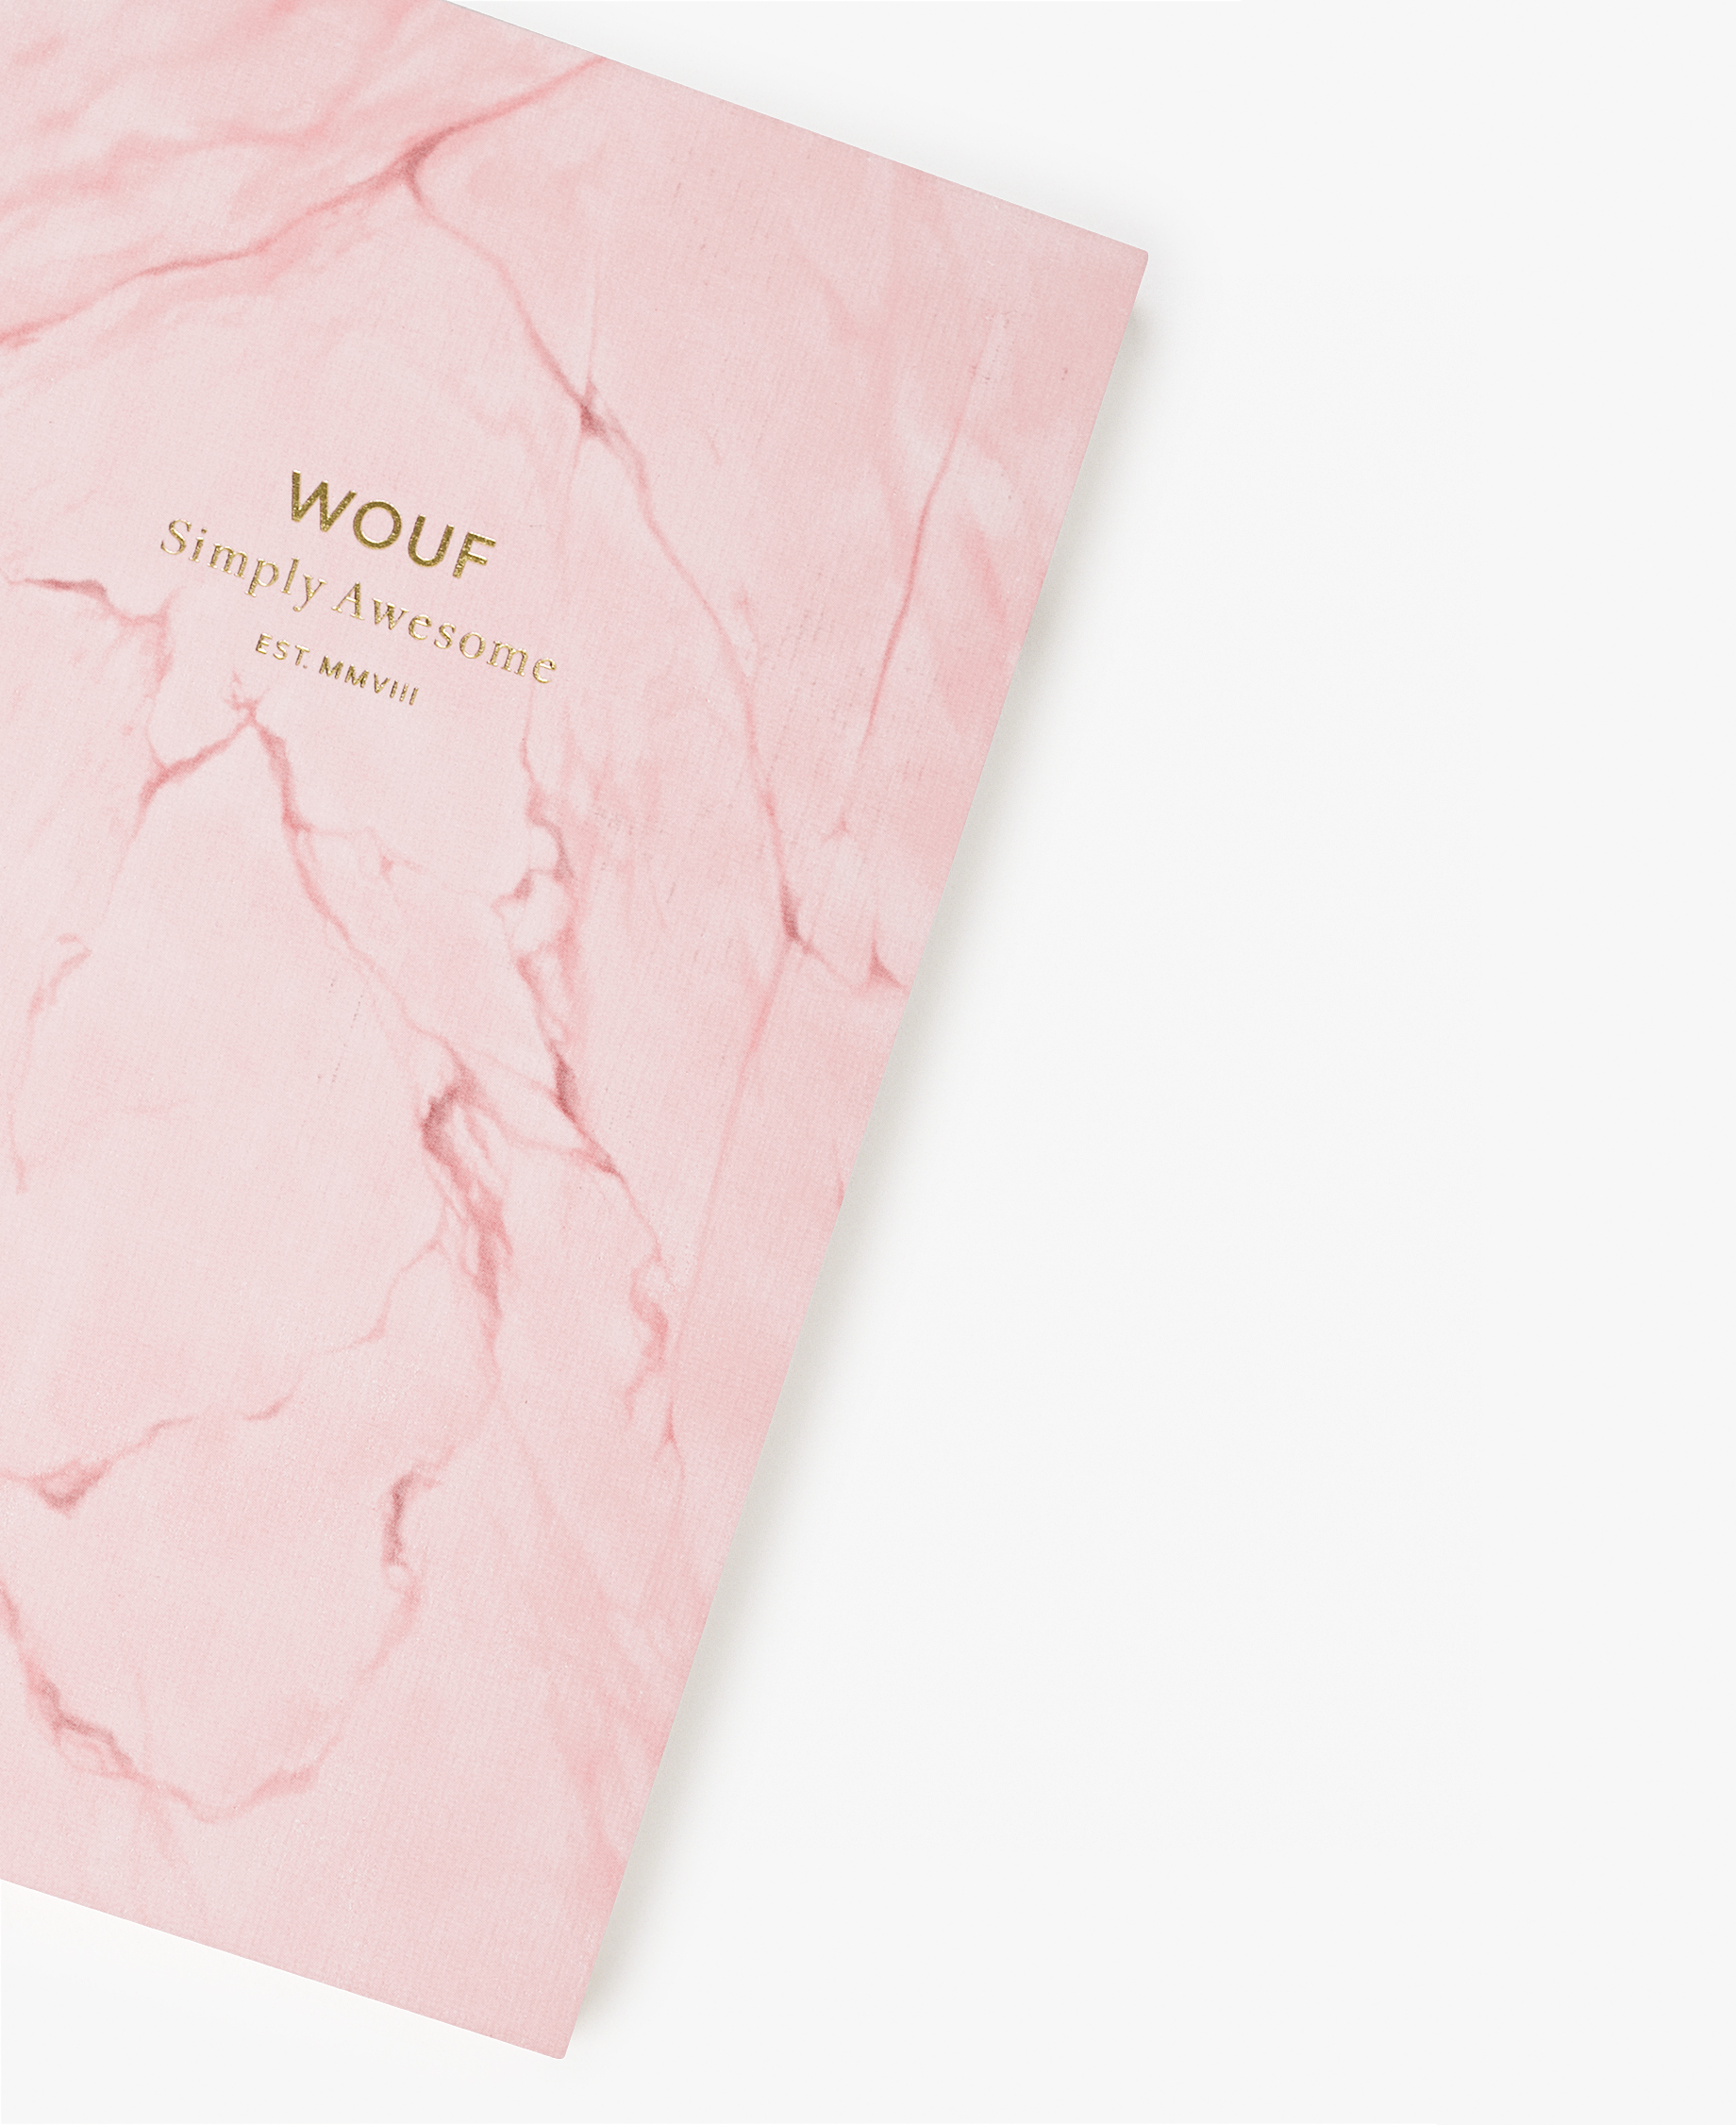 chic woman journal notebook